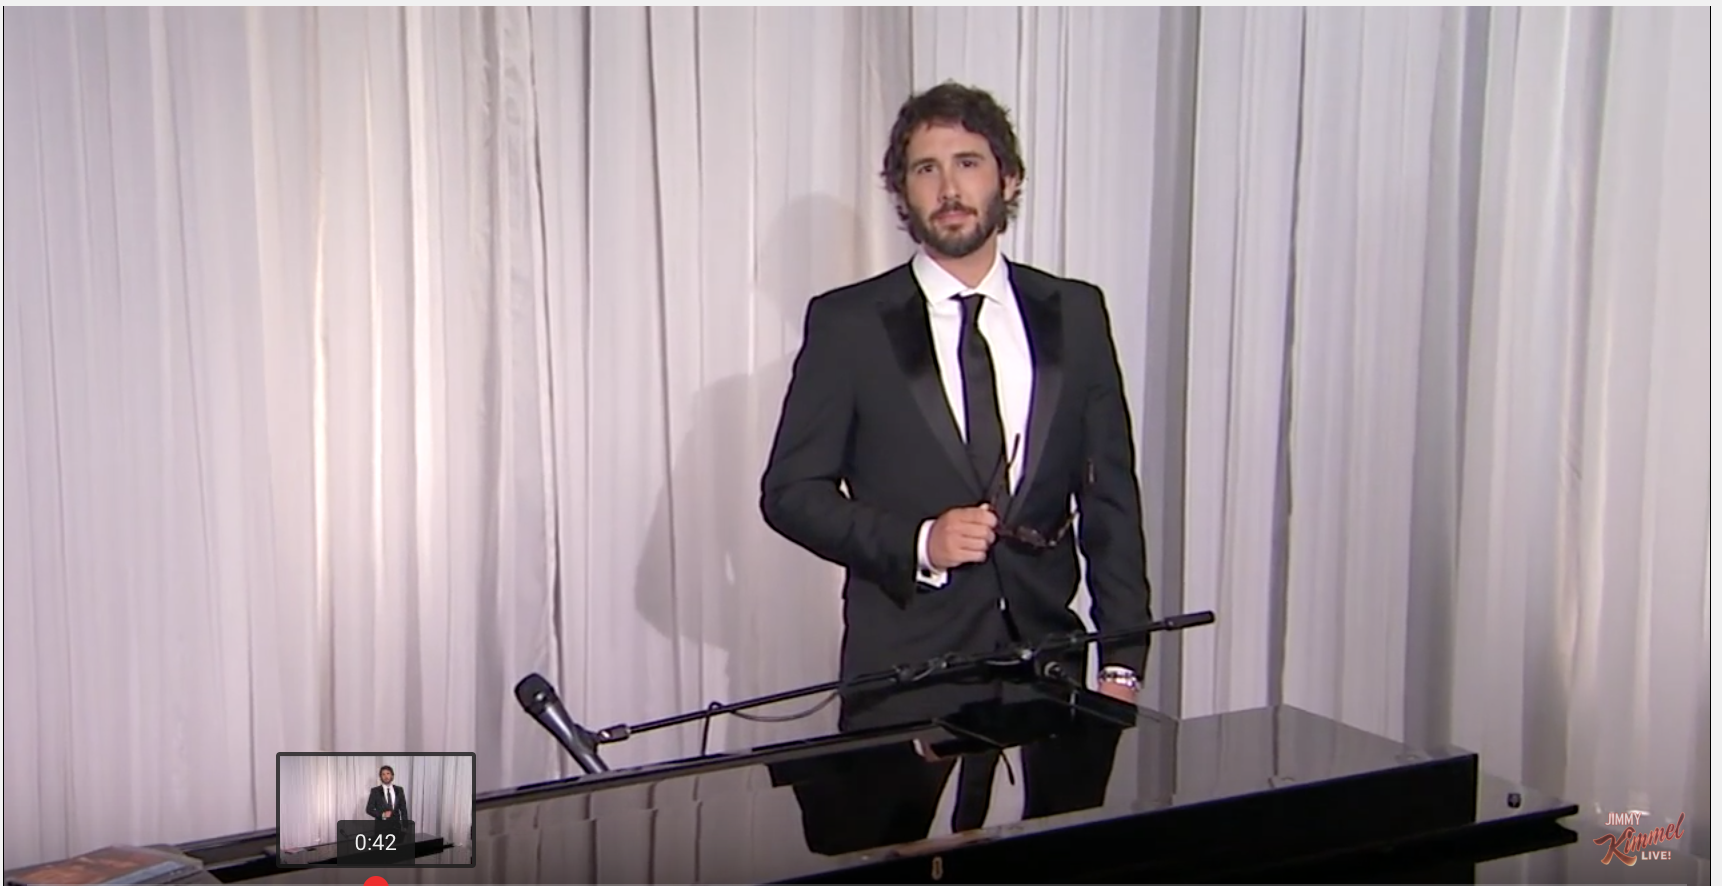 VIDEO: This Is Just Funny! Josh Groban Sings Donald Trump's Tweets